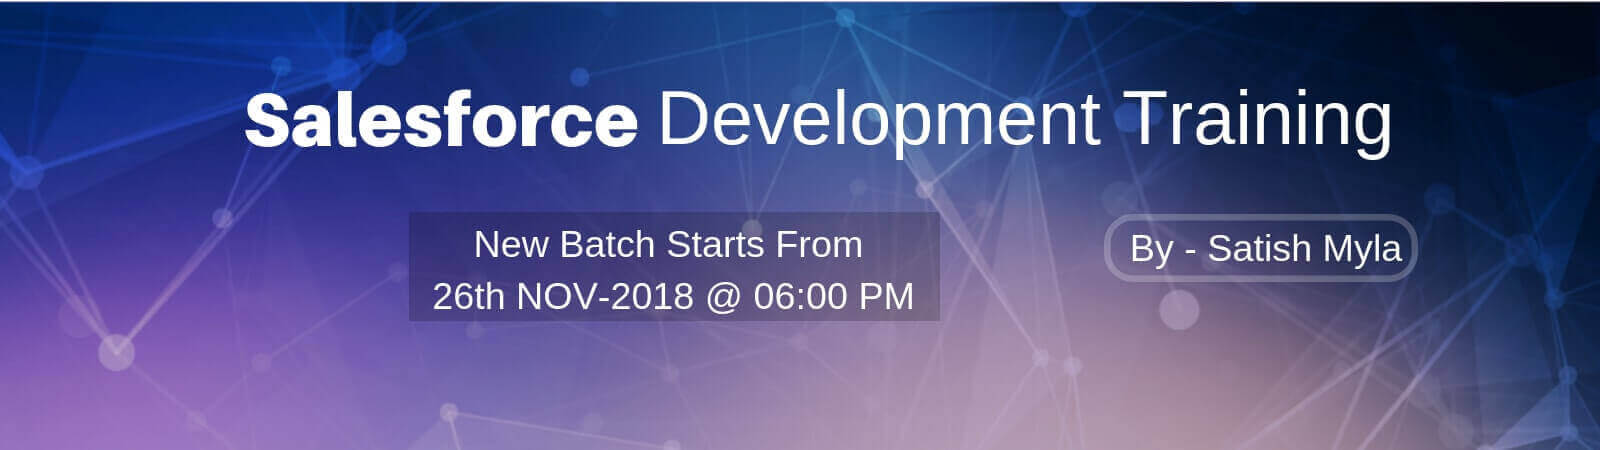 Salesforce Development Training